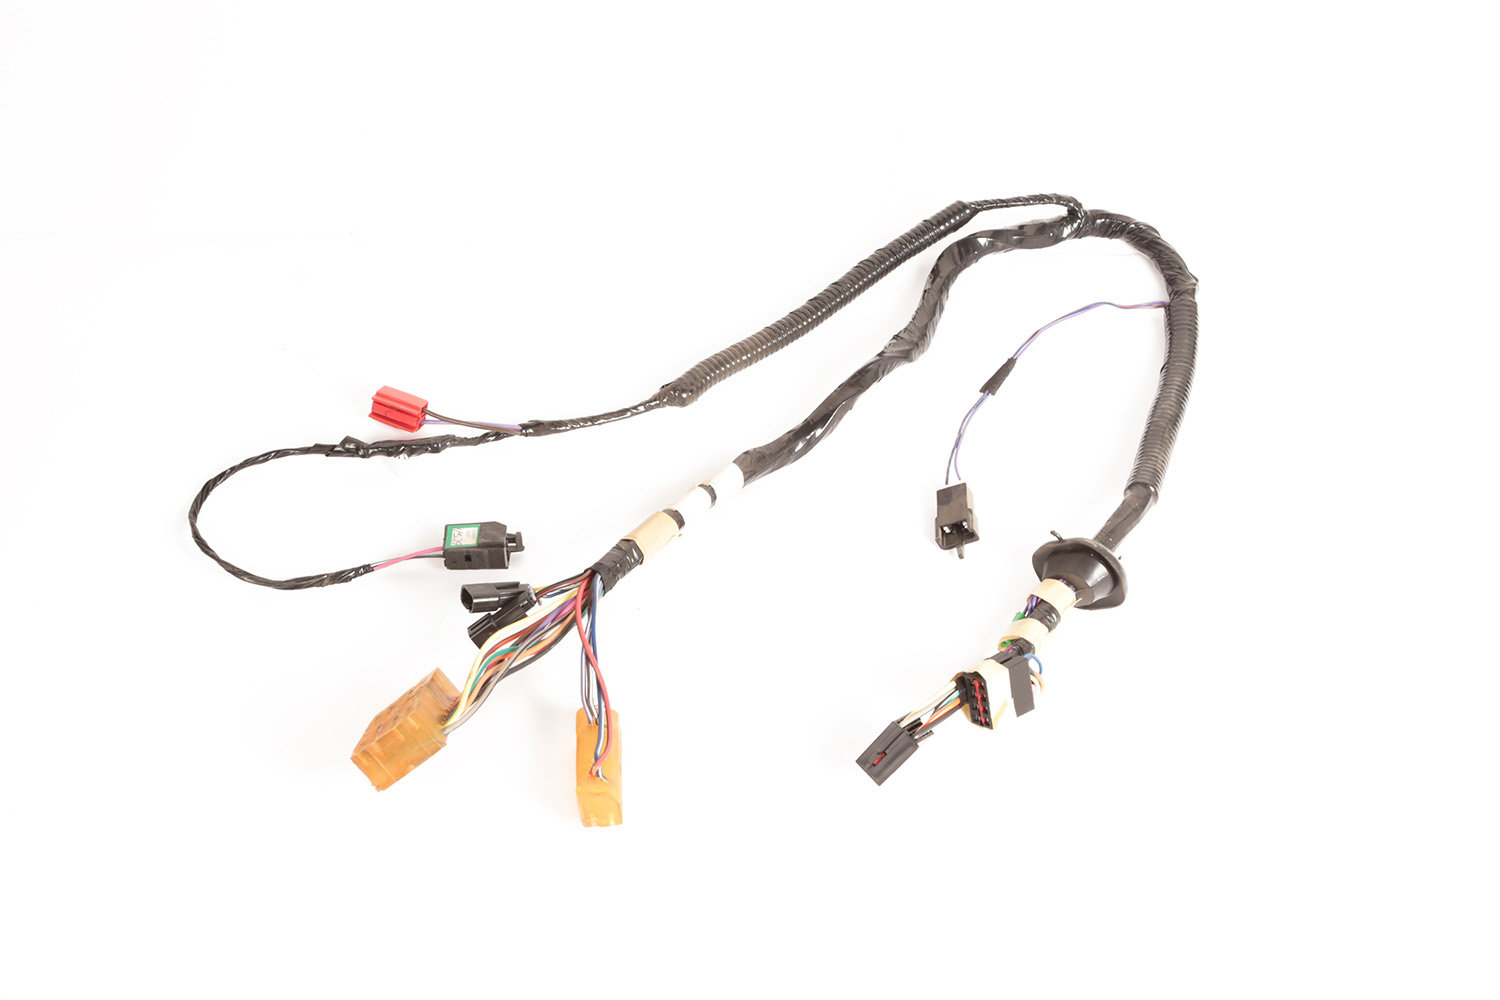 hight resolution of 1996 grand cherokee door lock wiring harness